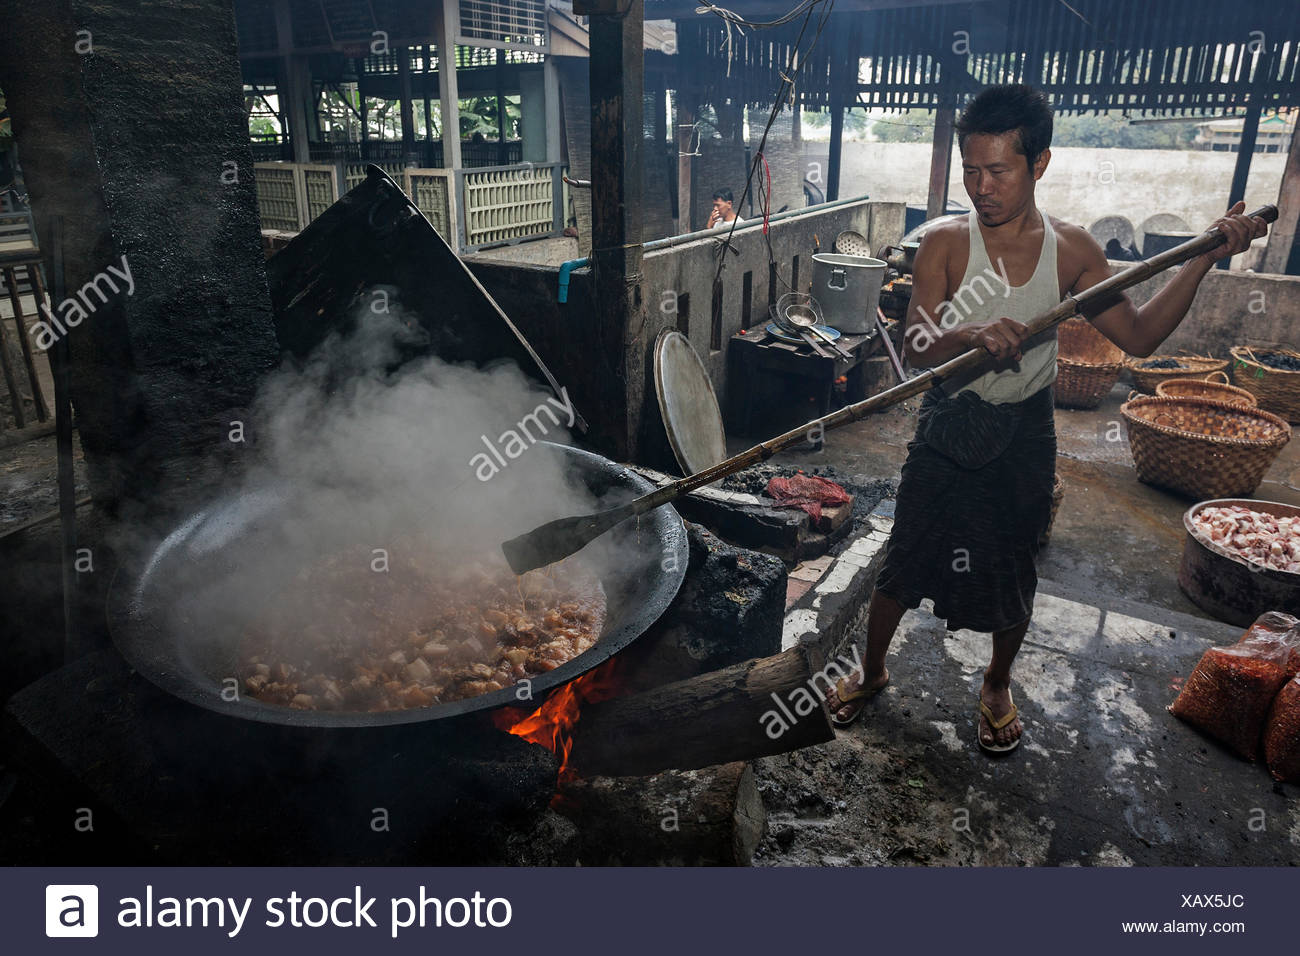 Cooking over an open fire, preparing food for the monks, catering in Mahagandayon Monastery, Amarapura, Divison Mandalay - Stock Image